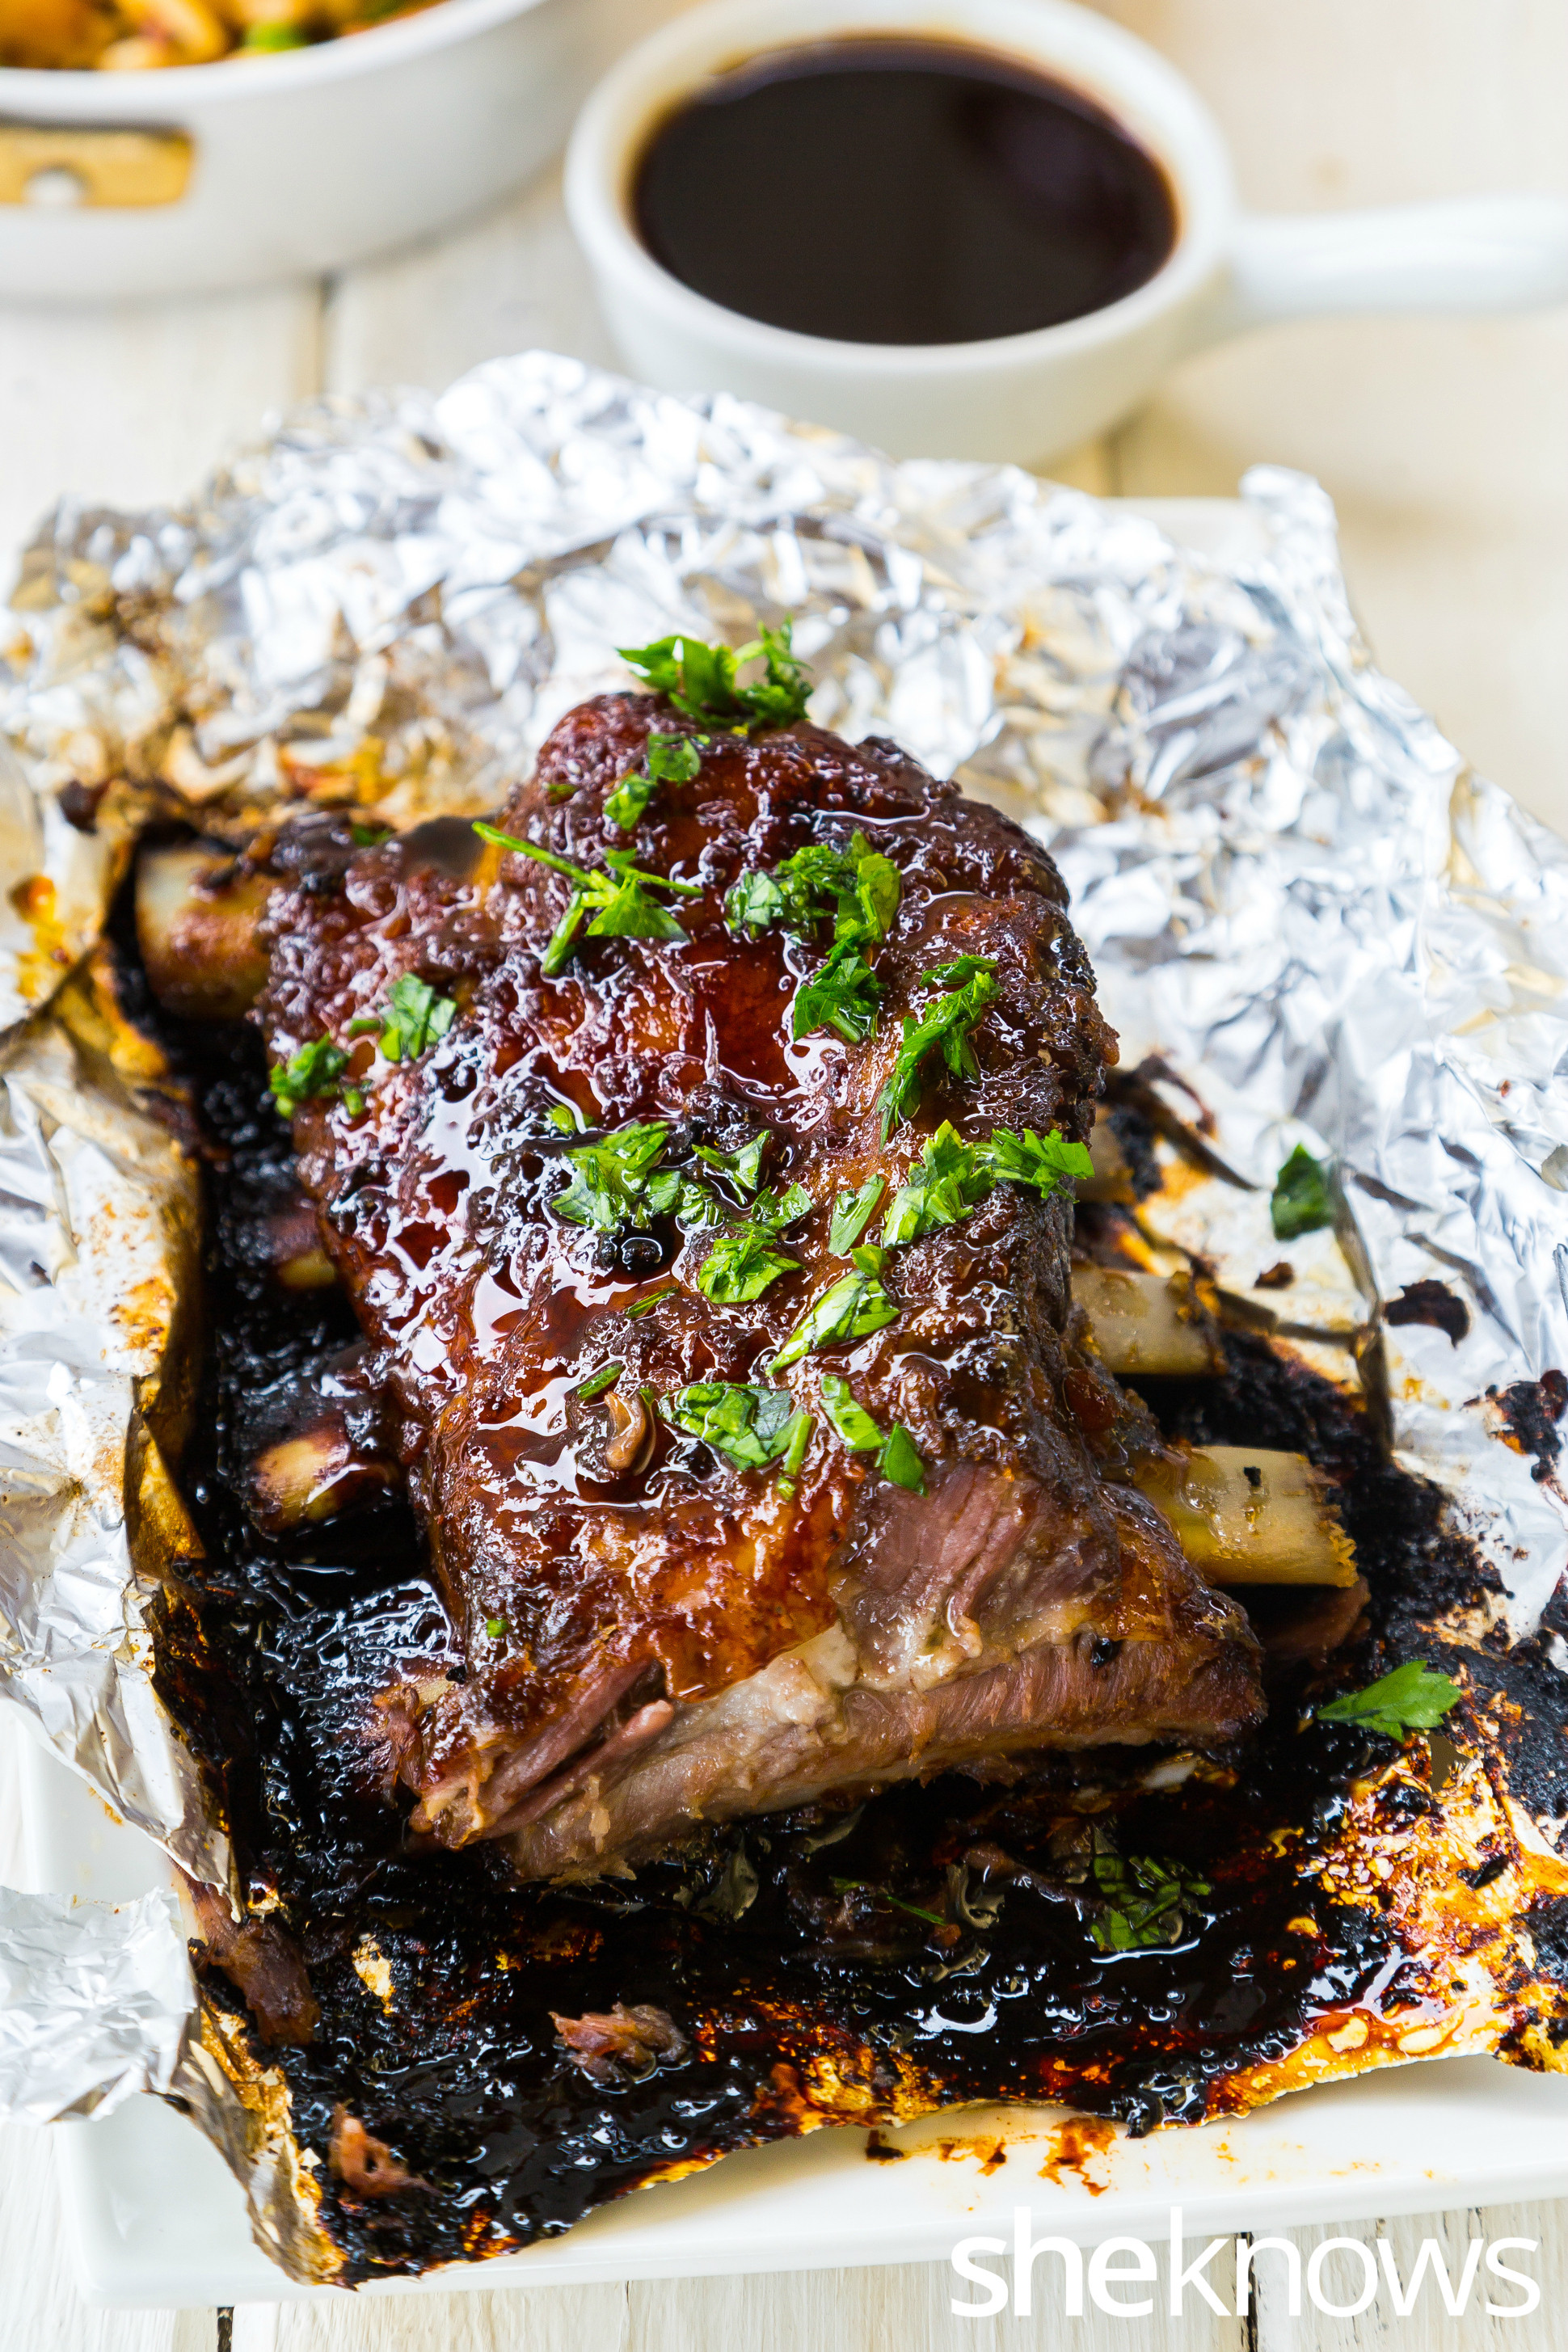 Baking Pork Ribs  Mouthwatering Asian style pork ribs are fall off the bone